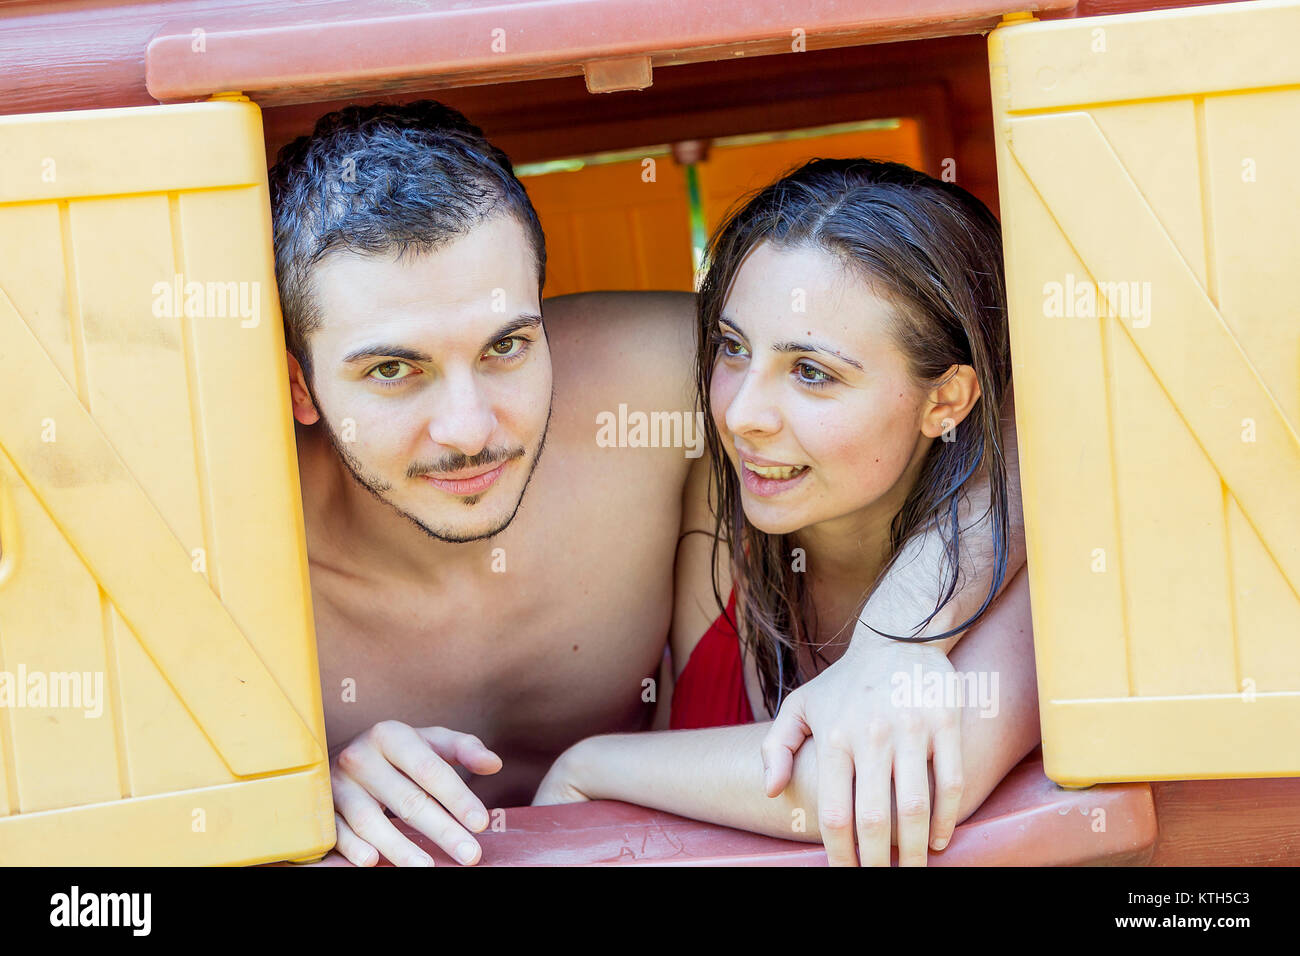 Couple portrait of lovers in swimwear looking out to window of a toy house - Stock Image